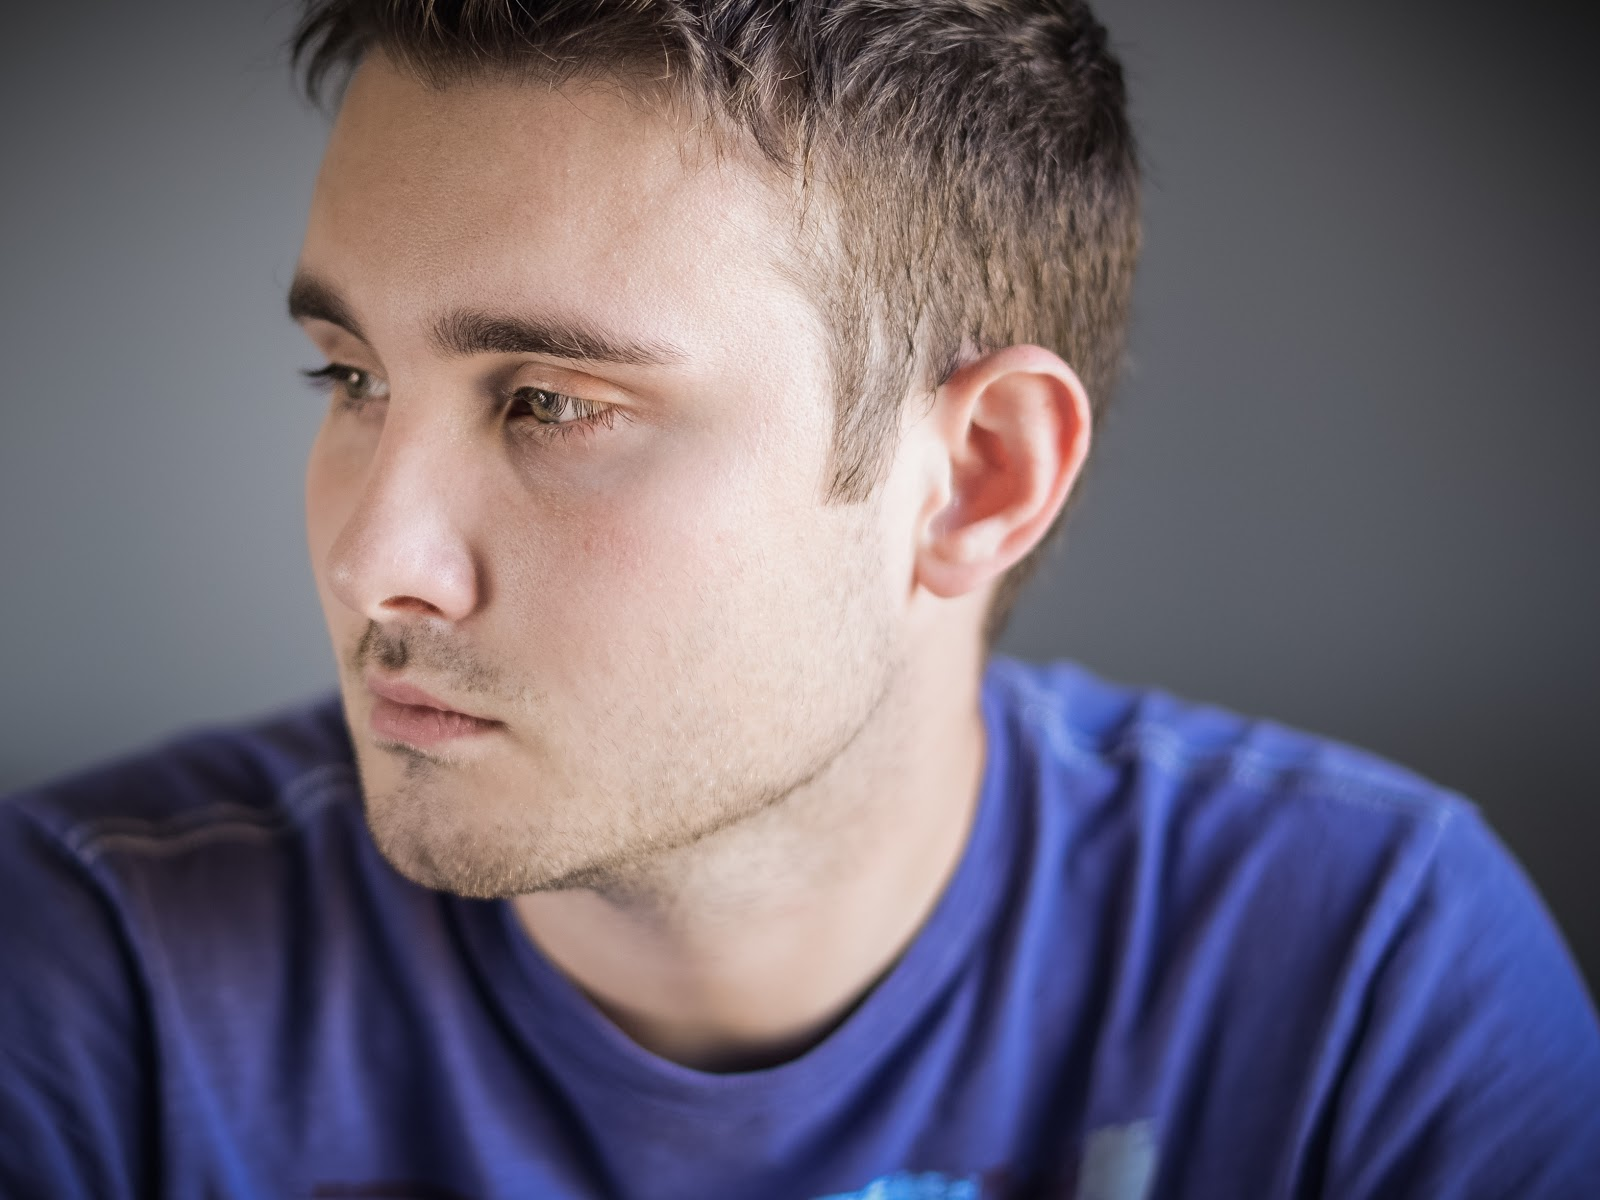 Health Conditions depressed man